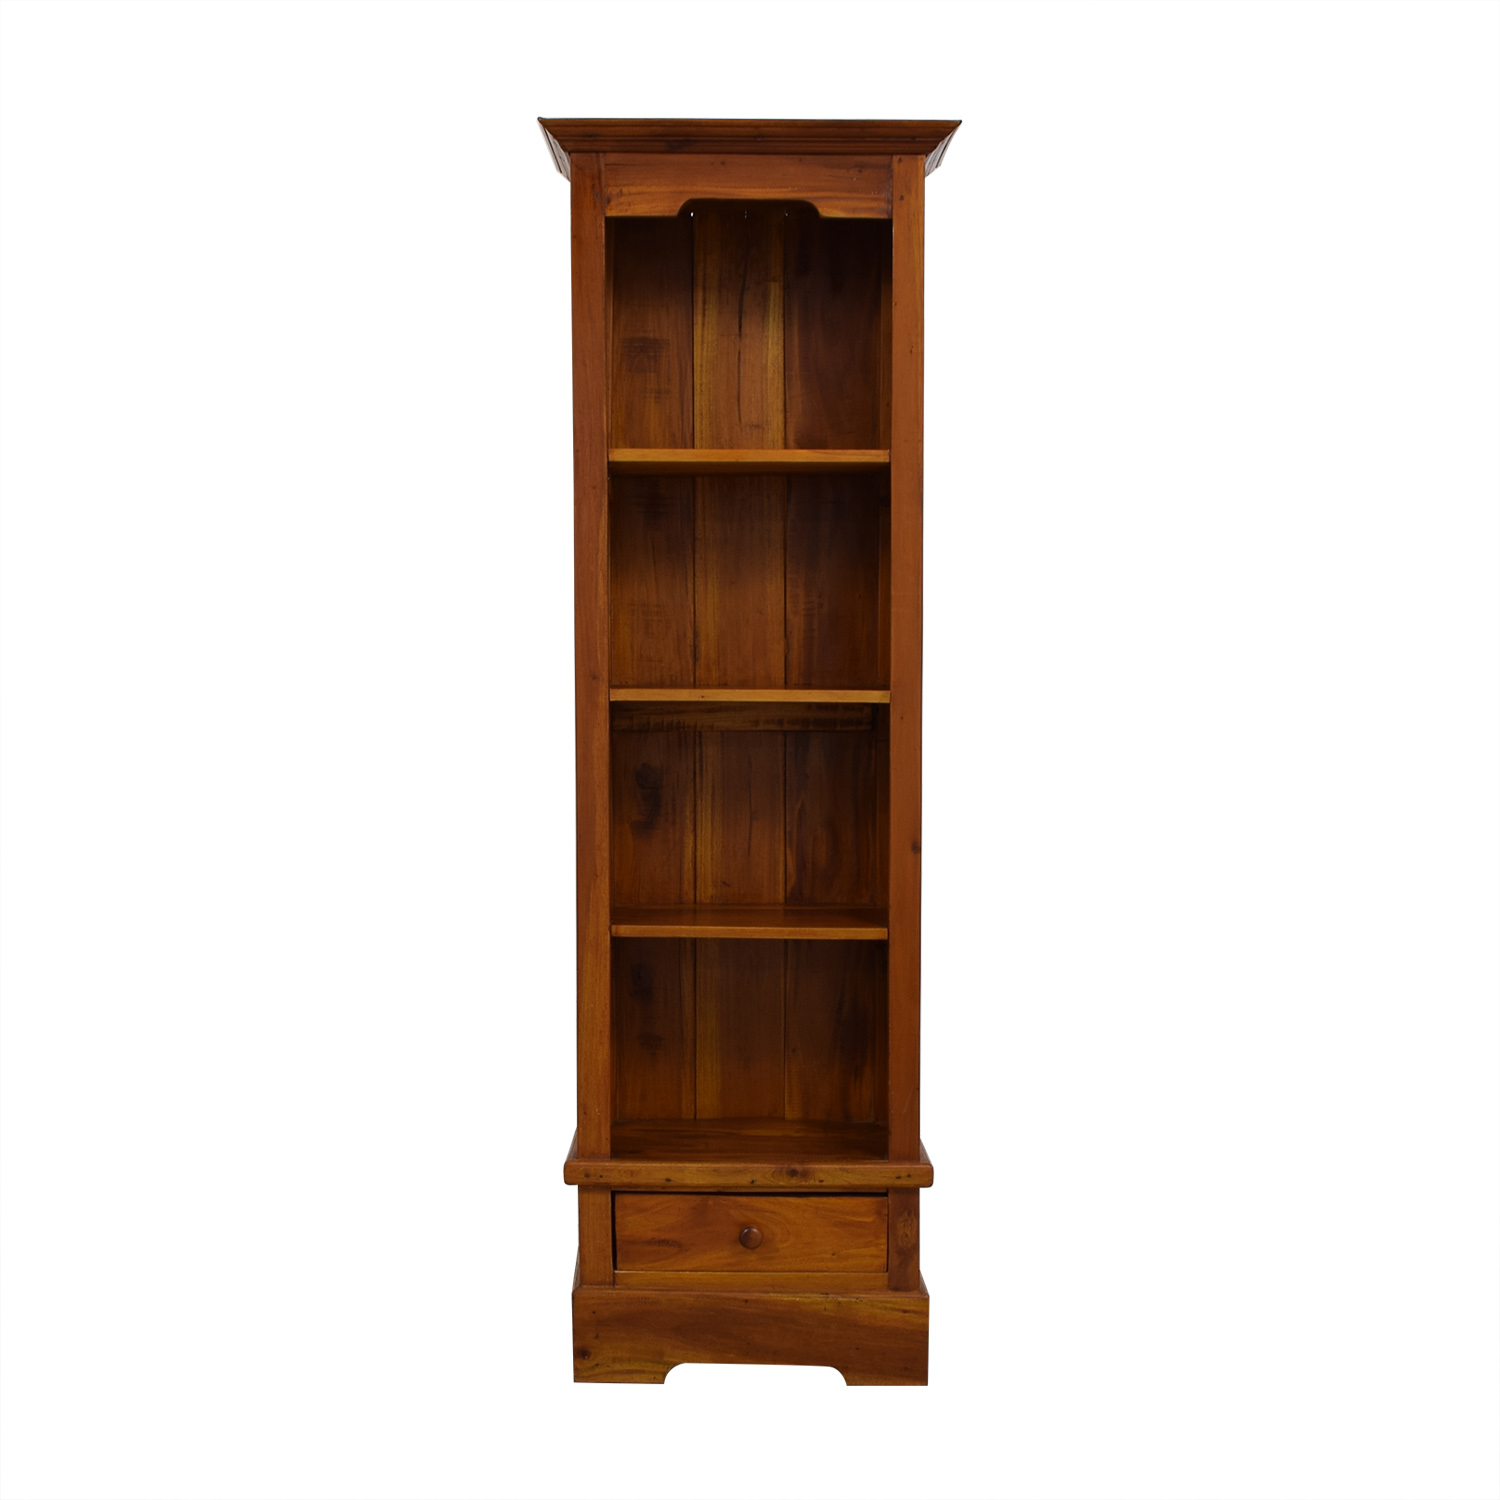 Tall Brown Wood Bookcase Bookcases & Shelving